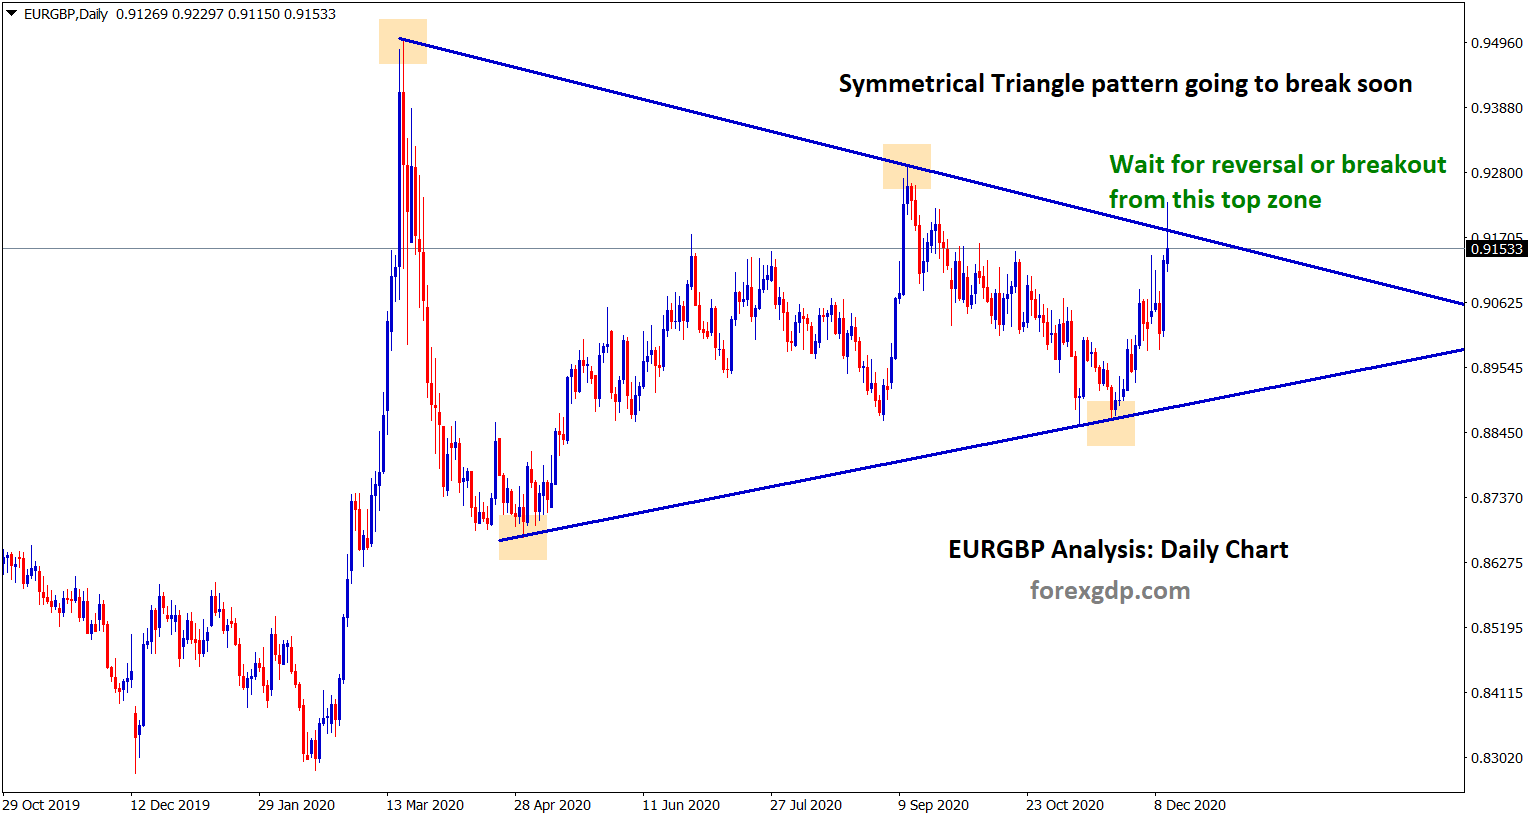 symmetrical triangle analysis in eurgbp wait for breakout